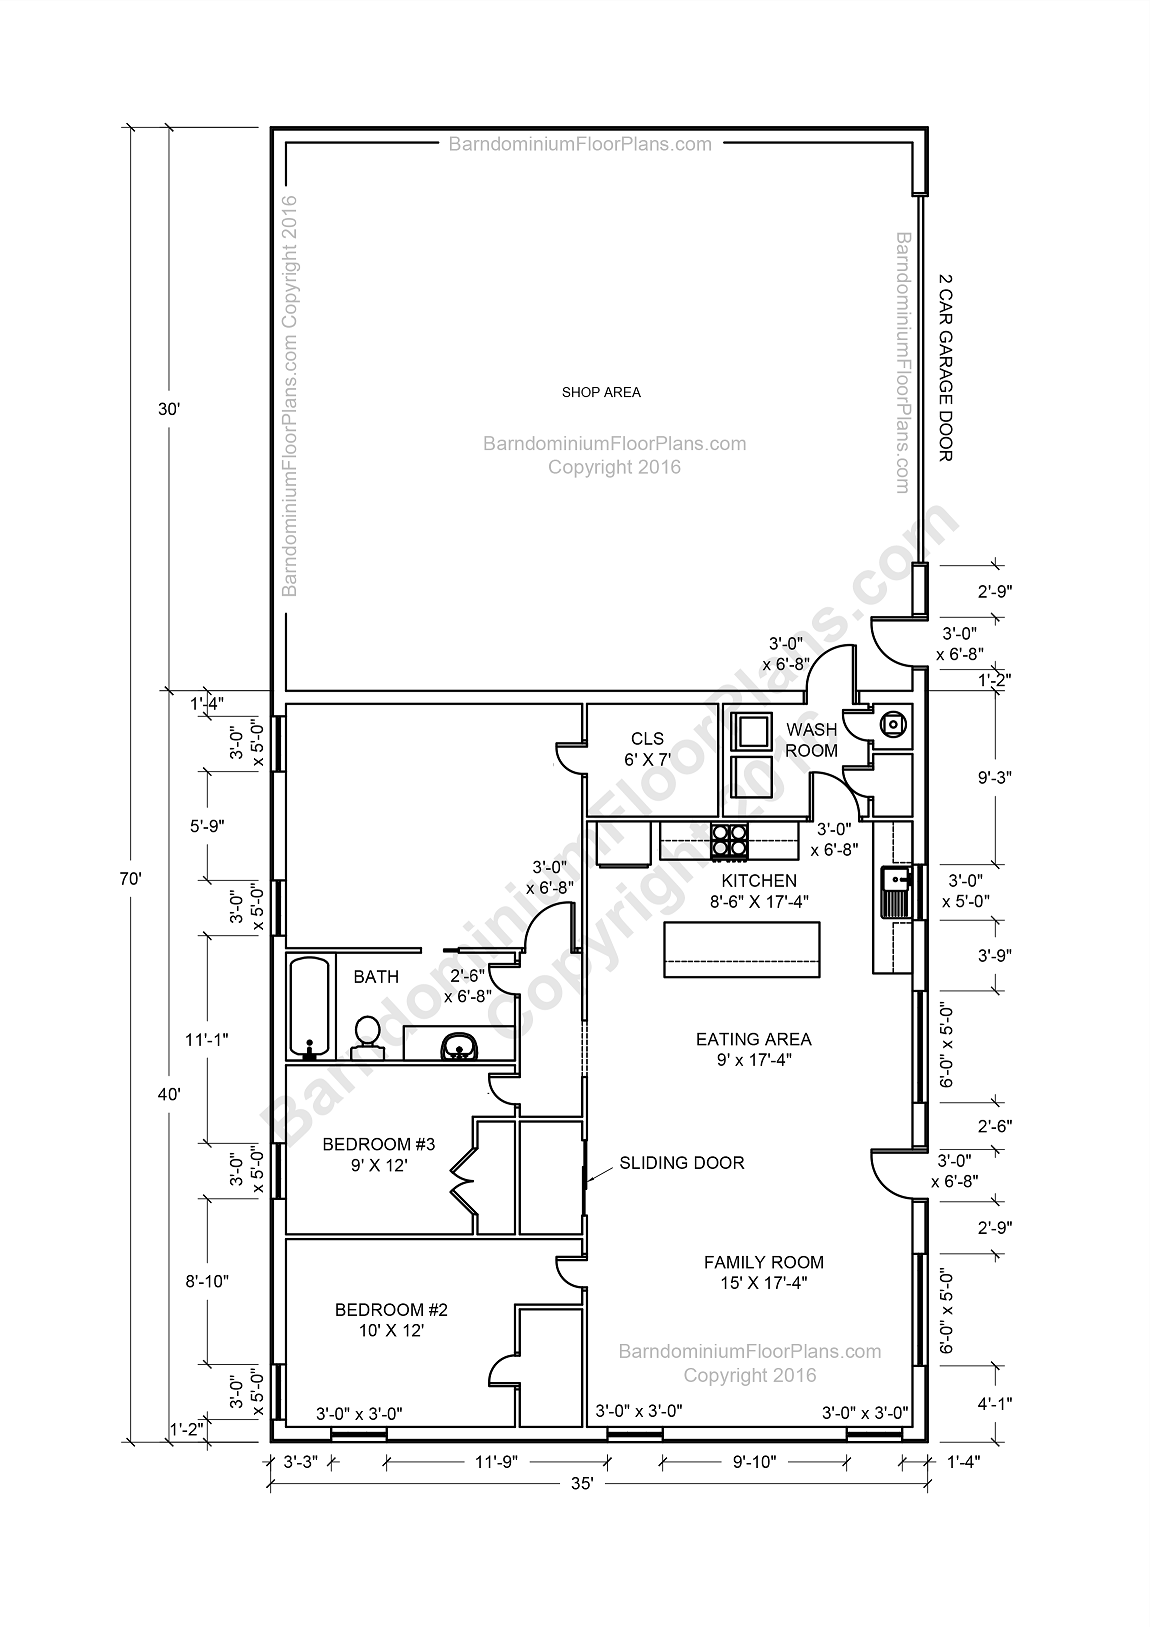 Barndominium Floor Plans Pole Barn House Plans And Metal: 3 bedroom open floor plan